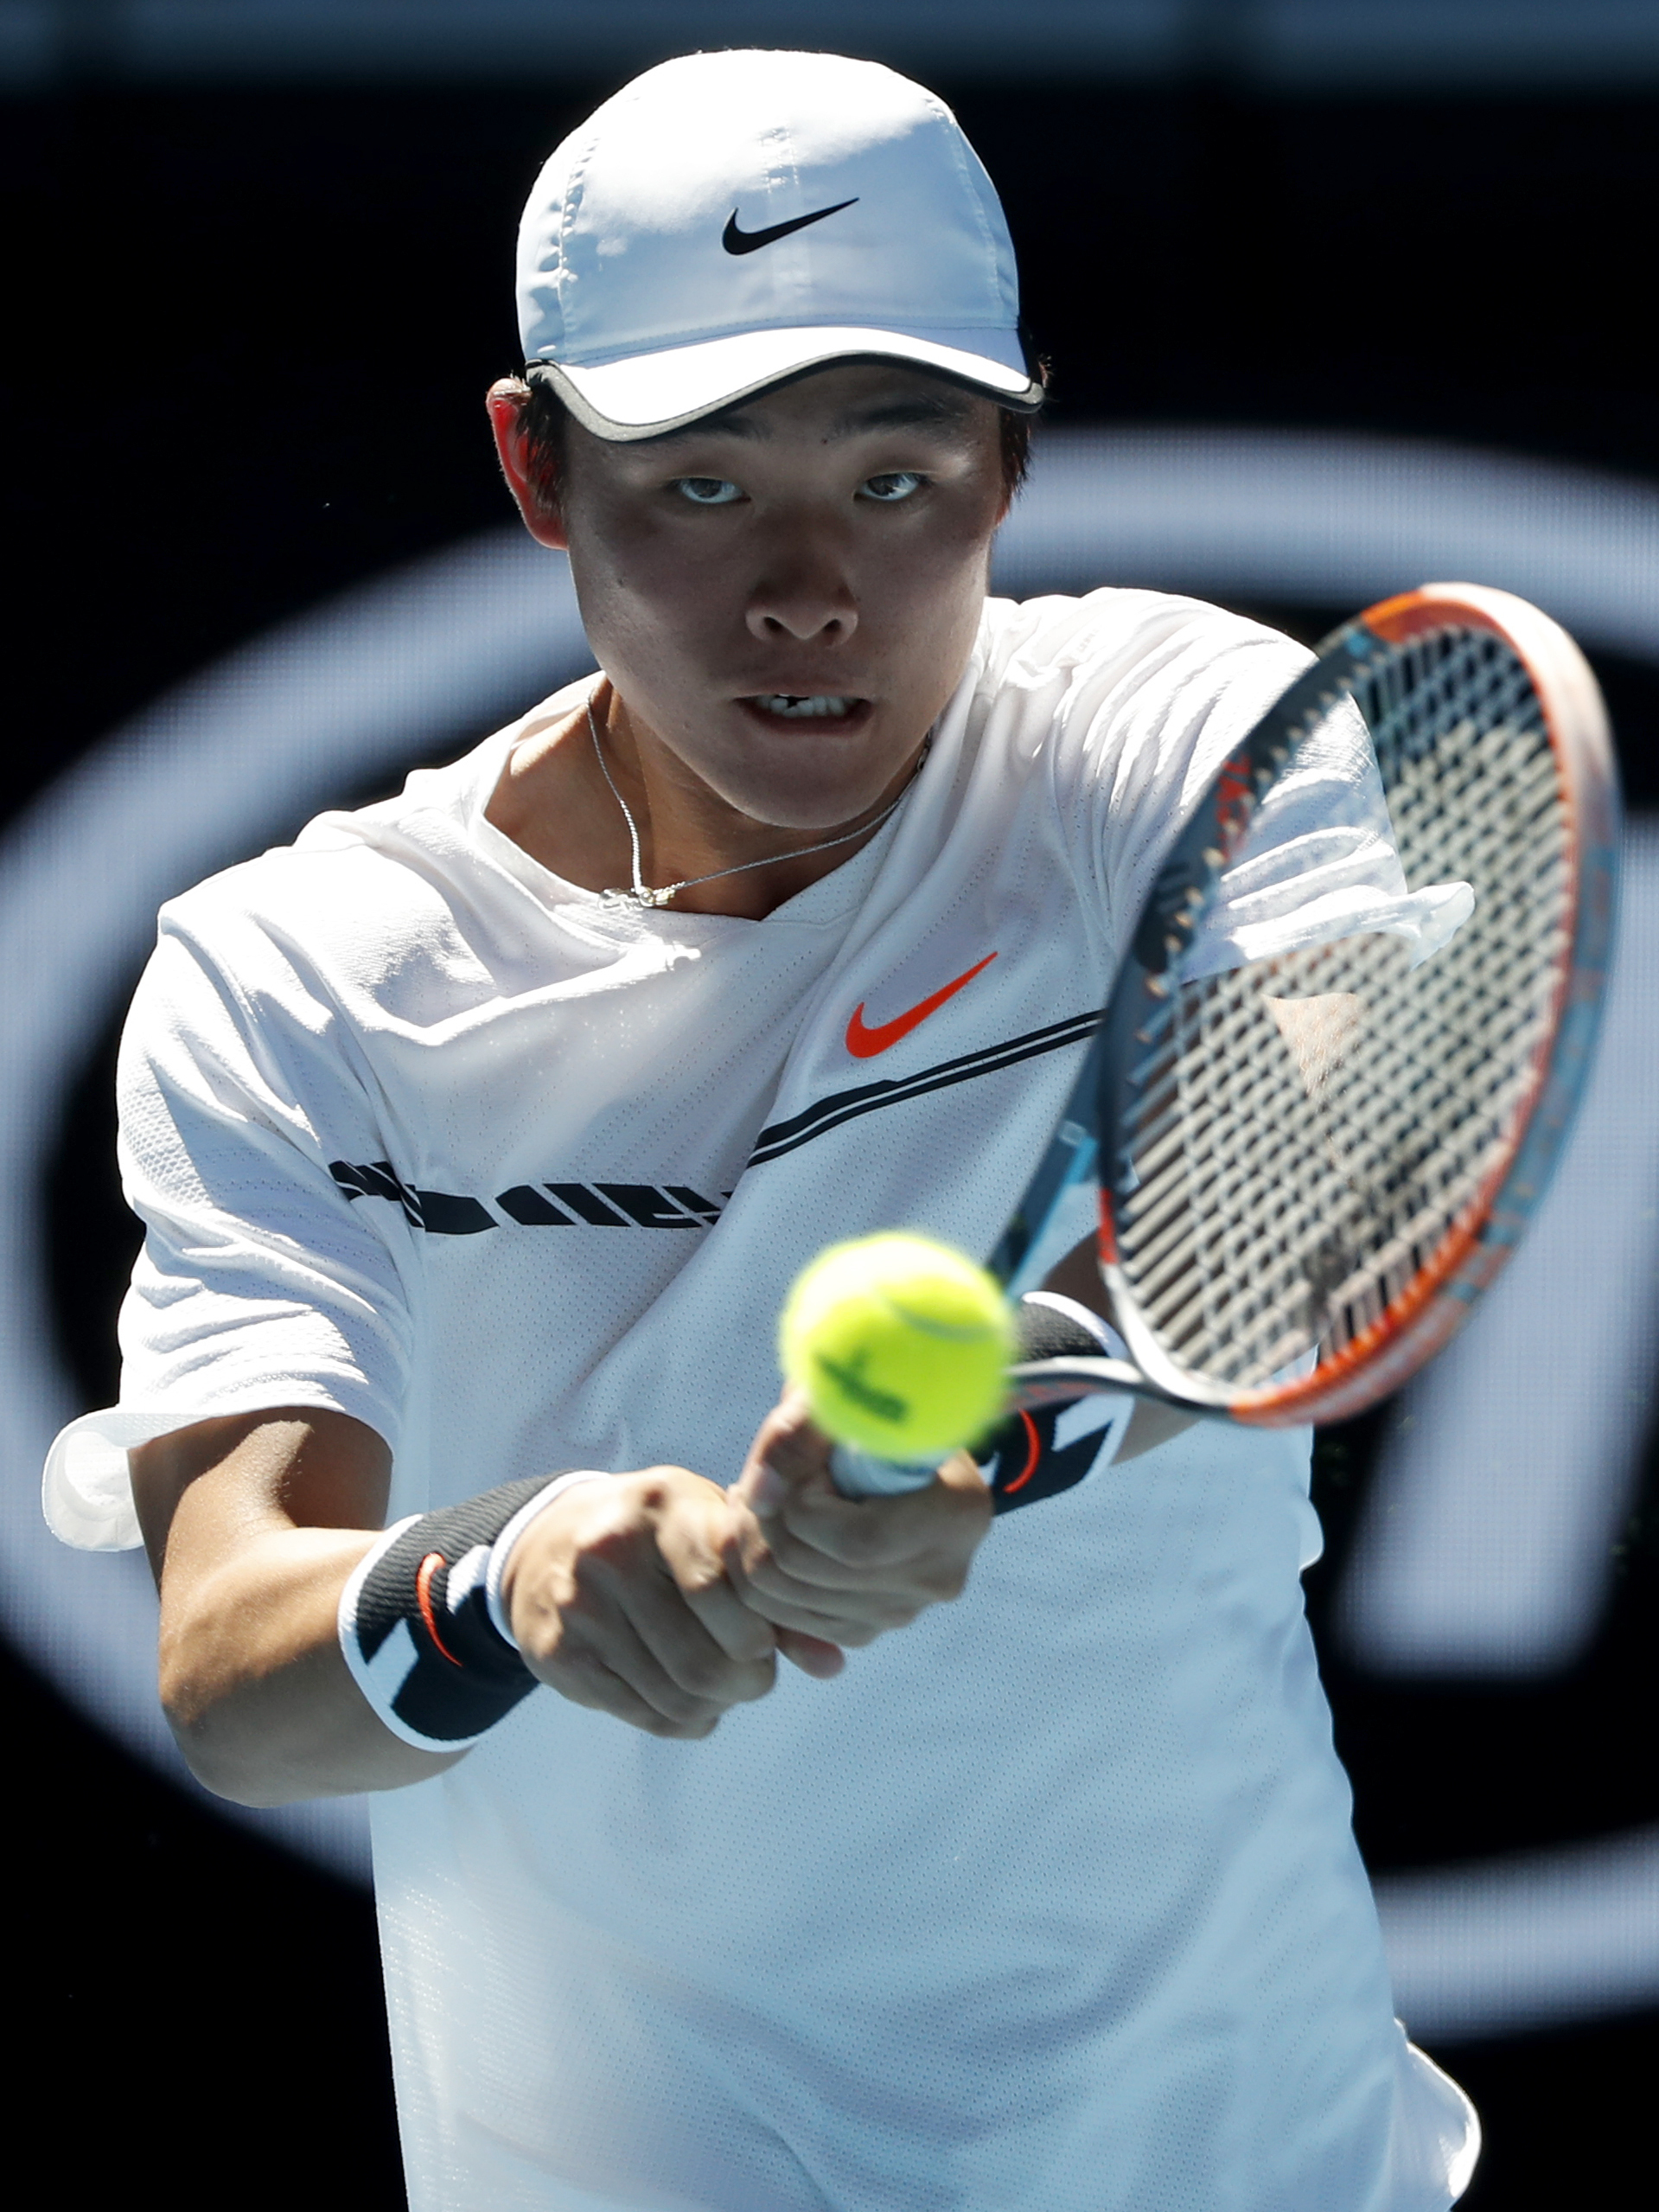 China's Wu Yibing plays a backhand return to Israel's Yshai Oliel during their junior boys' singles semifinal at the Australian Open tennis championships in Melbourne, Australia, Friday, Jan. 27, 2017. (AP Photo/Dita Alangkara)